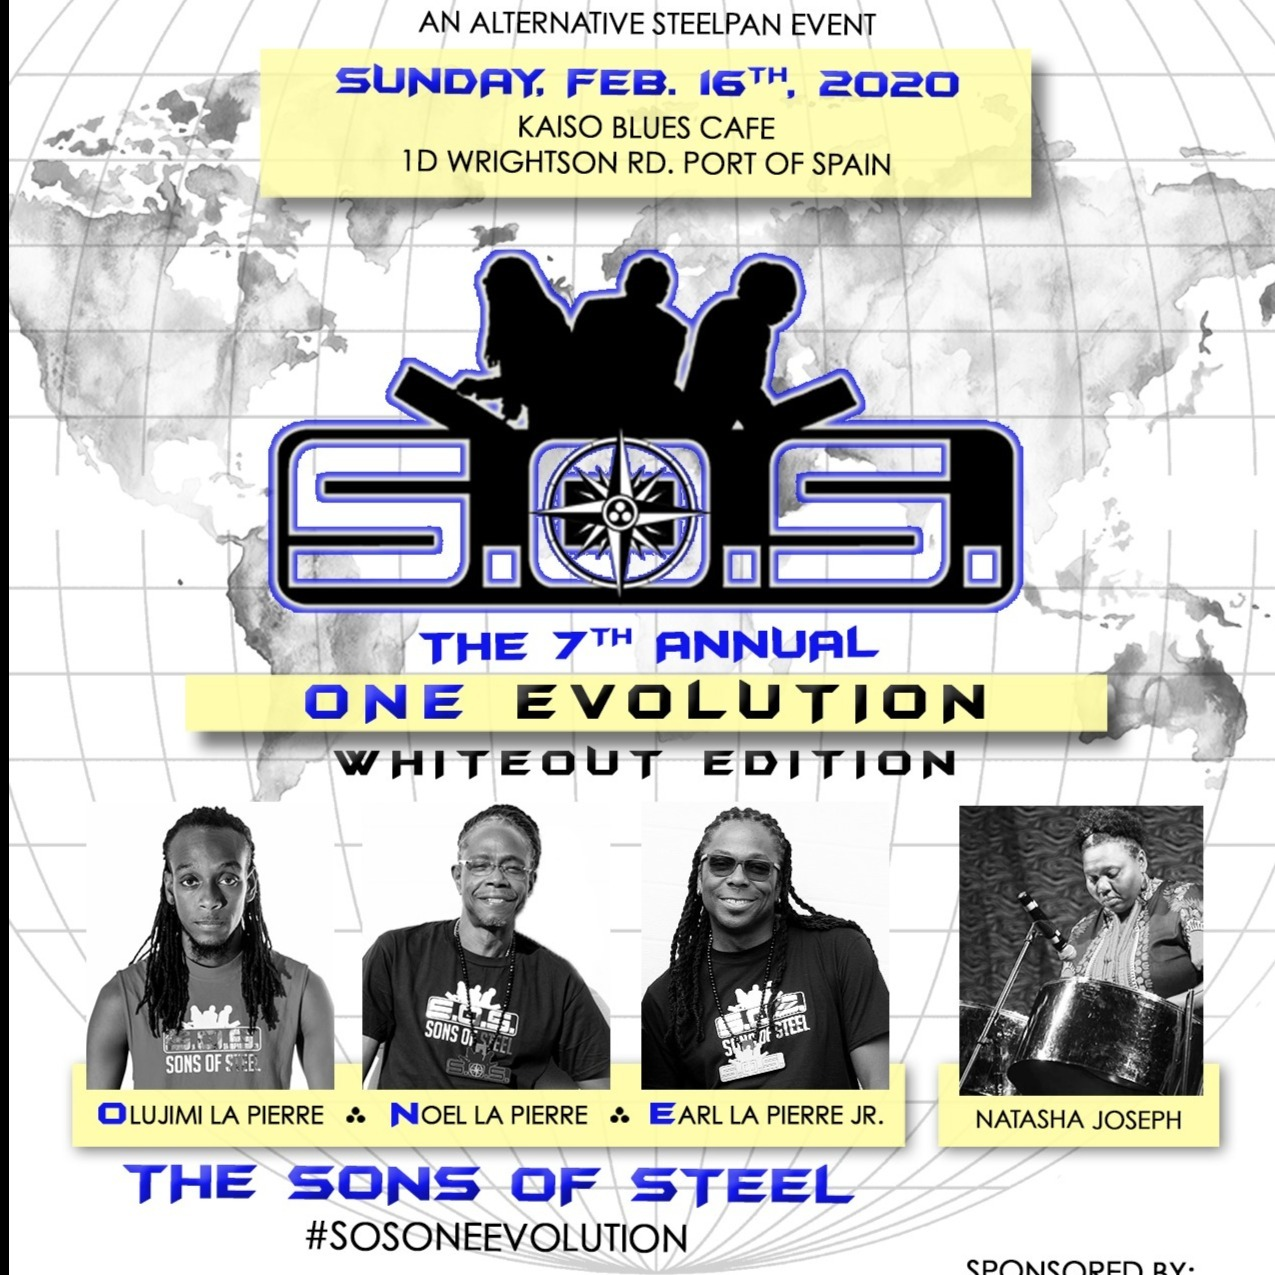 The 7th Annual One Evolution - Whiteout Edition